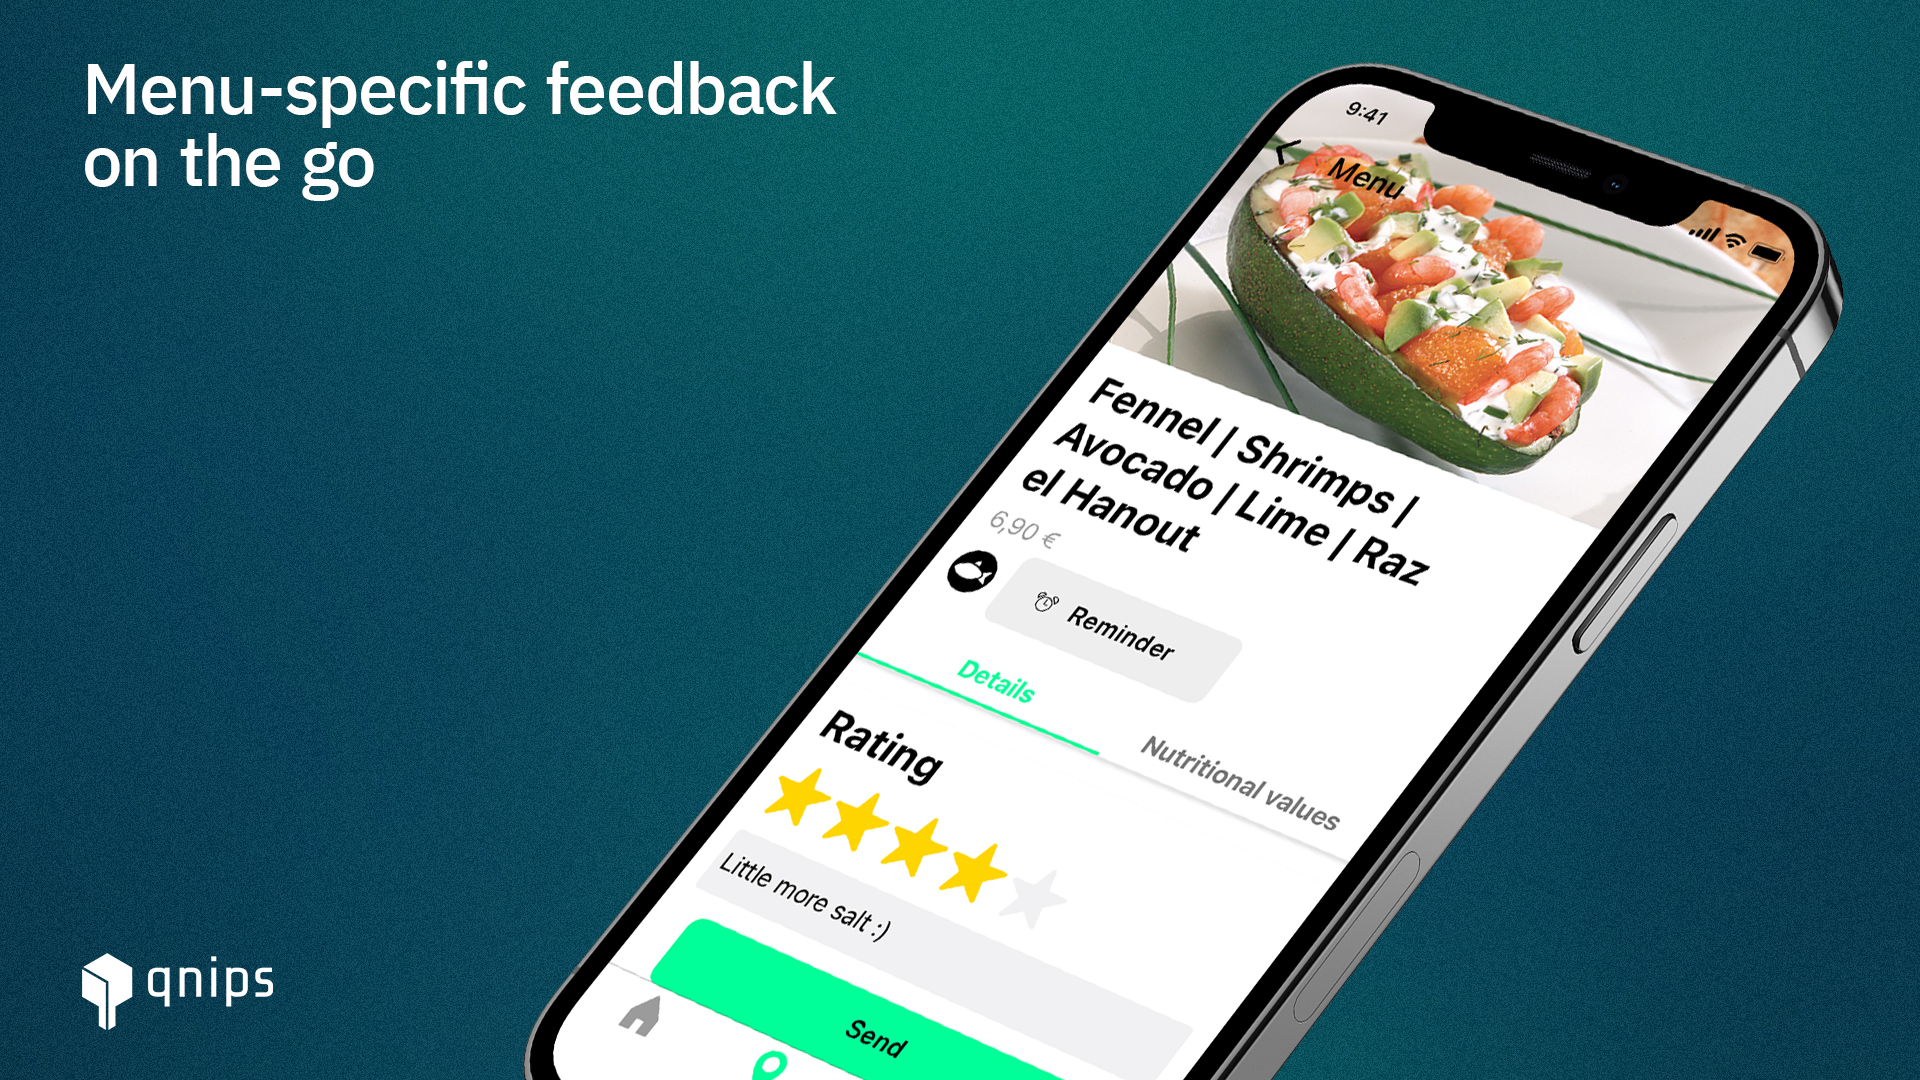 In the qnips app, your guests can give a feedback for the corresponding dish directly on the digital menu.